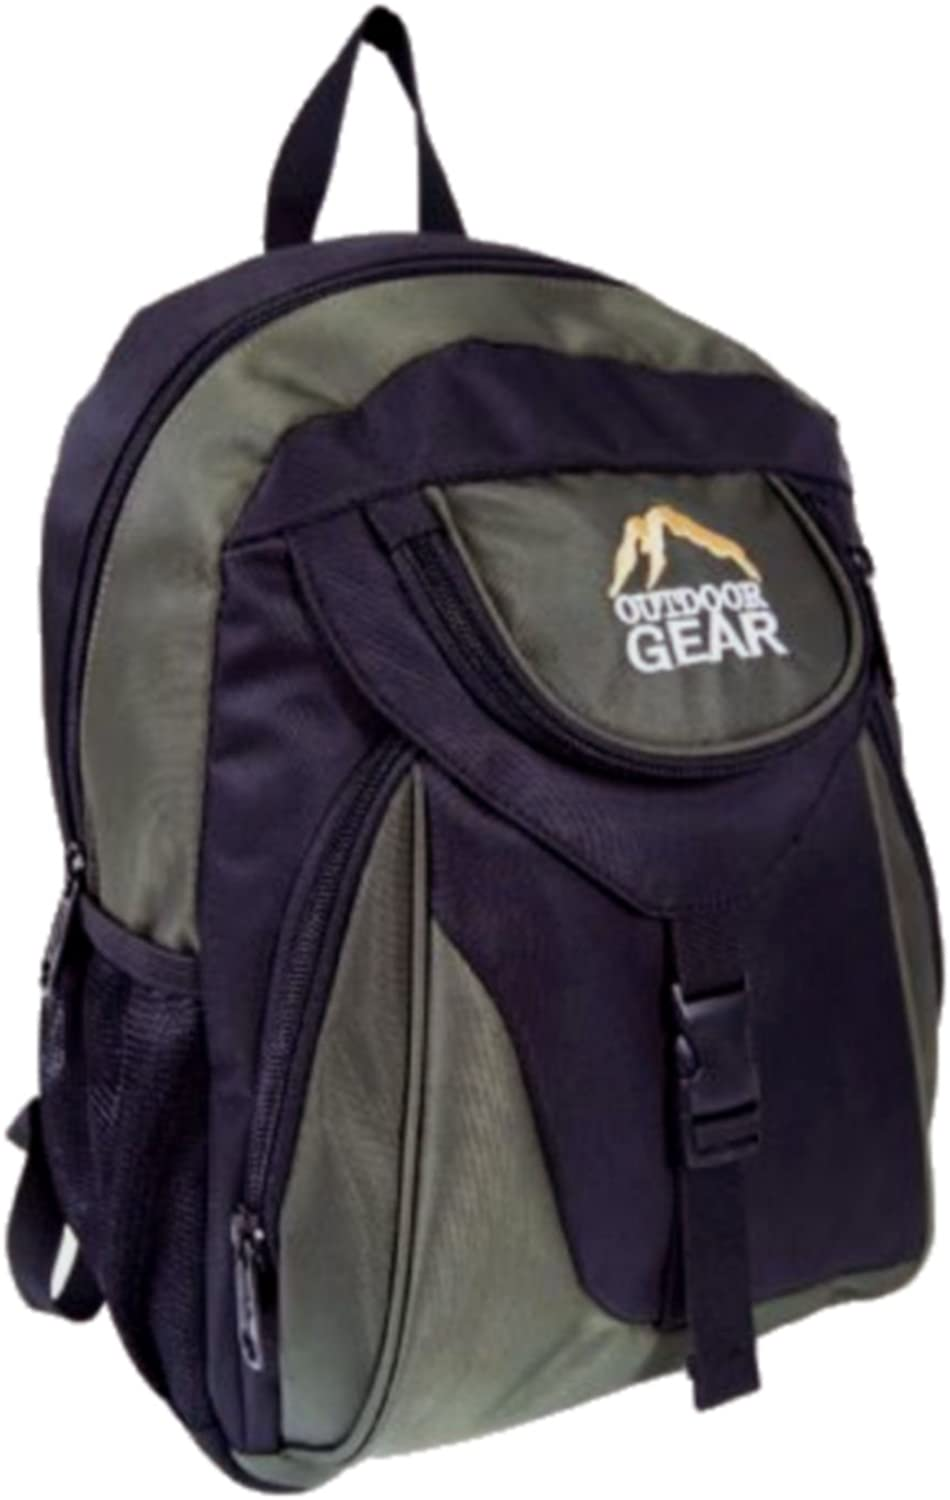 Small 12 Litre Backpack Daypack Men Ladies Boys Girls Child Waterproof Material 5 Colours